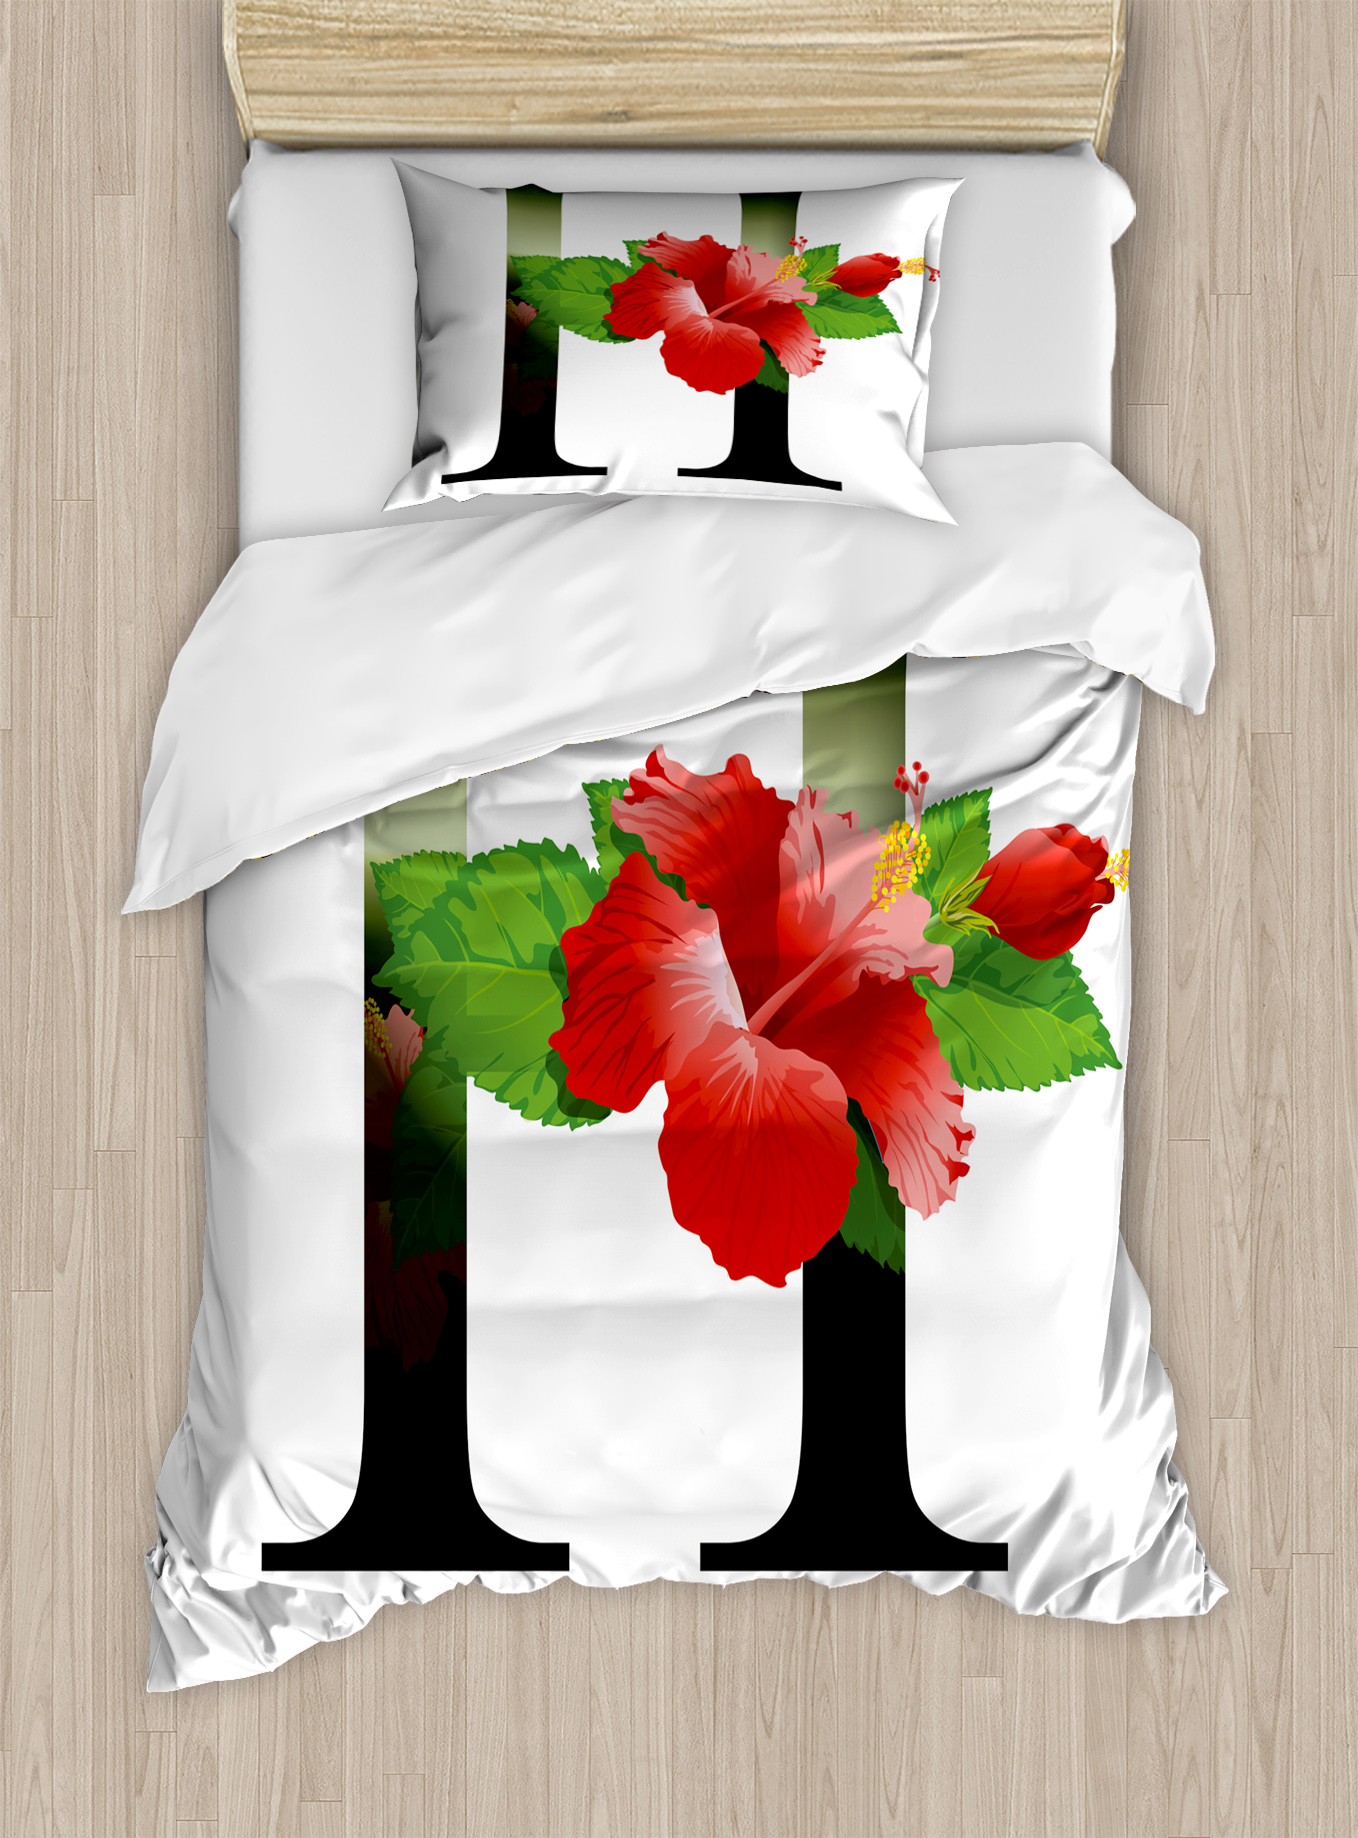 Letter h twin size duvet cover set hibiscus design green leaves letter h twin size duvet cover set hibiscus design green leaves vibrant color flower natural pattern print decorative 2 piece bedding set with 1 pillow izmirmasajfo Images